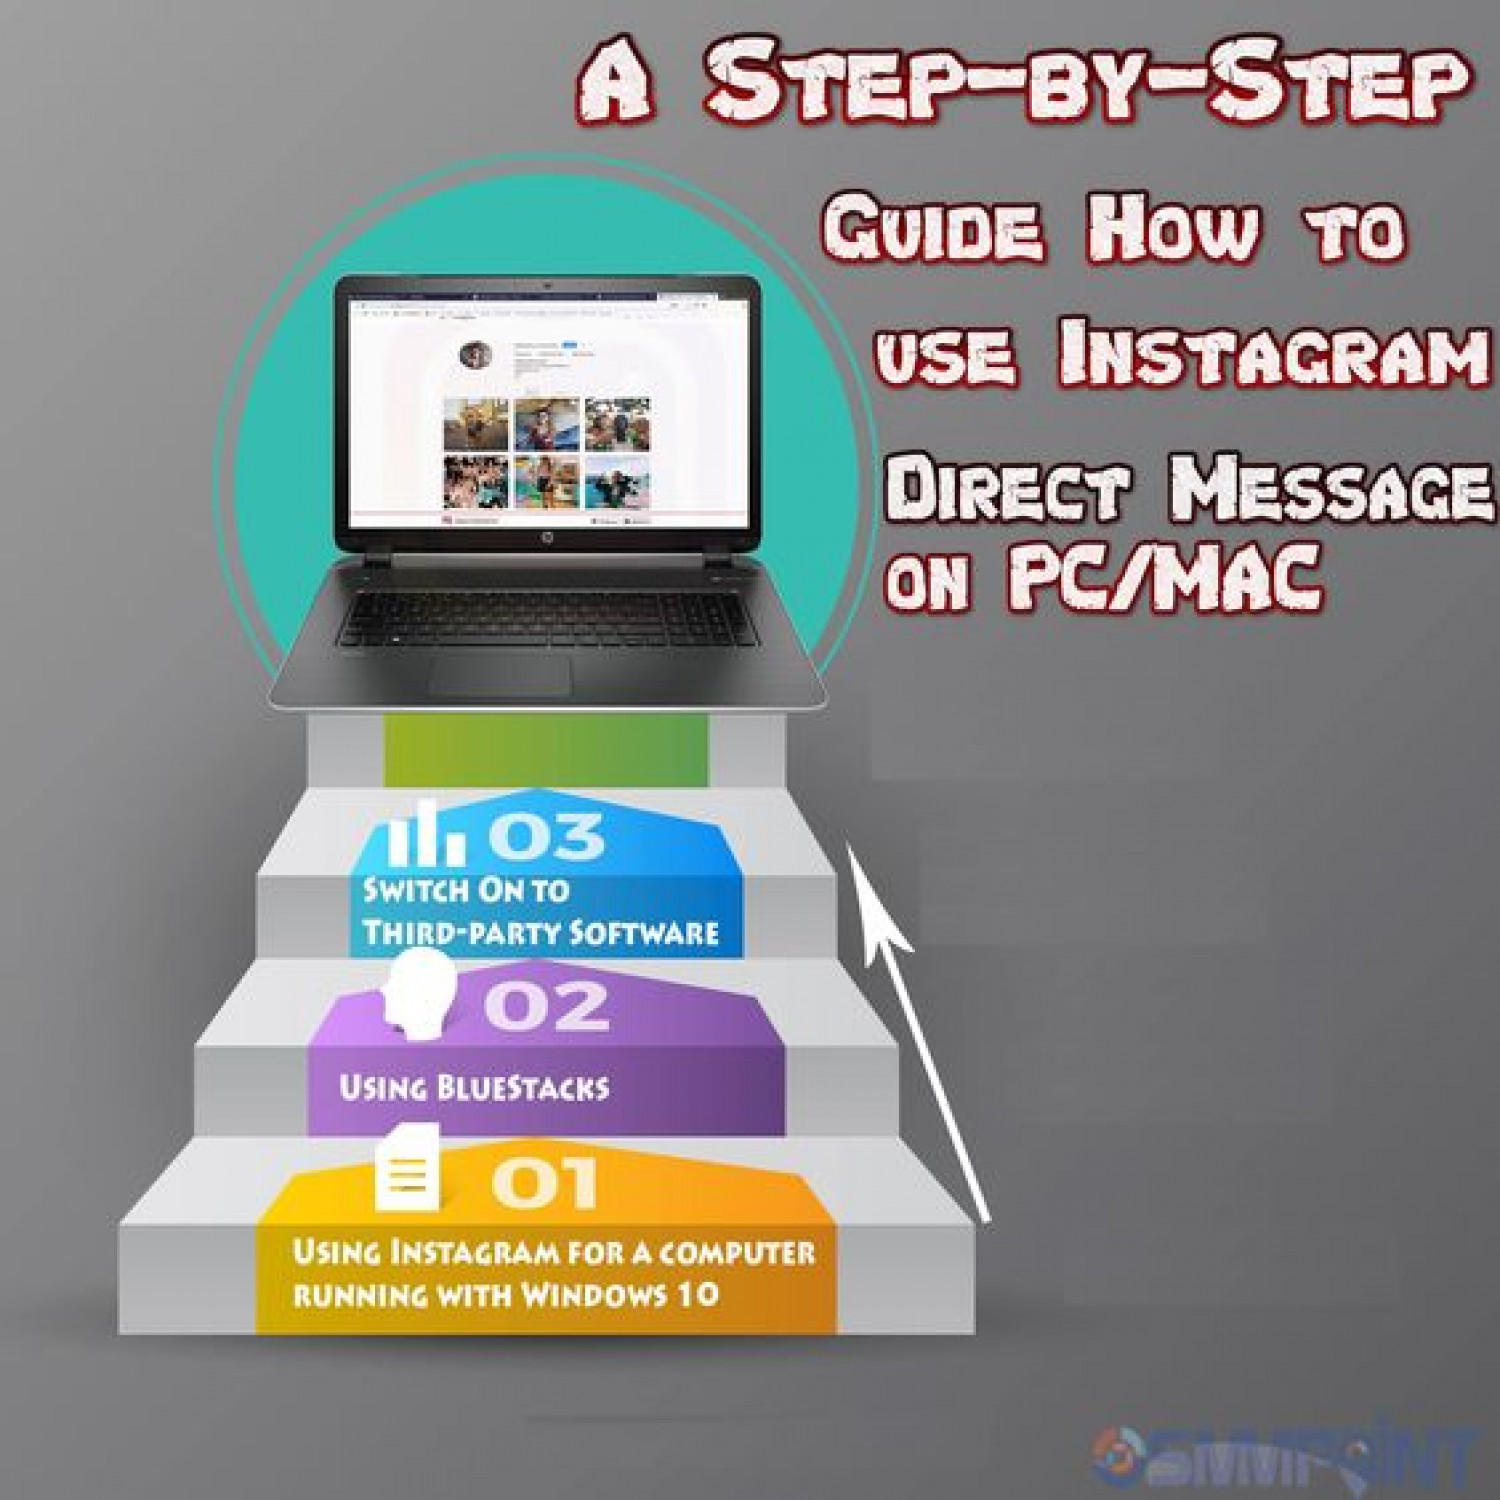 How to use Instagram Direct Message on Pc or Mac Infographic